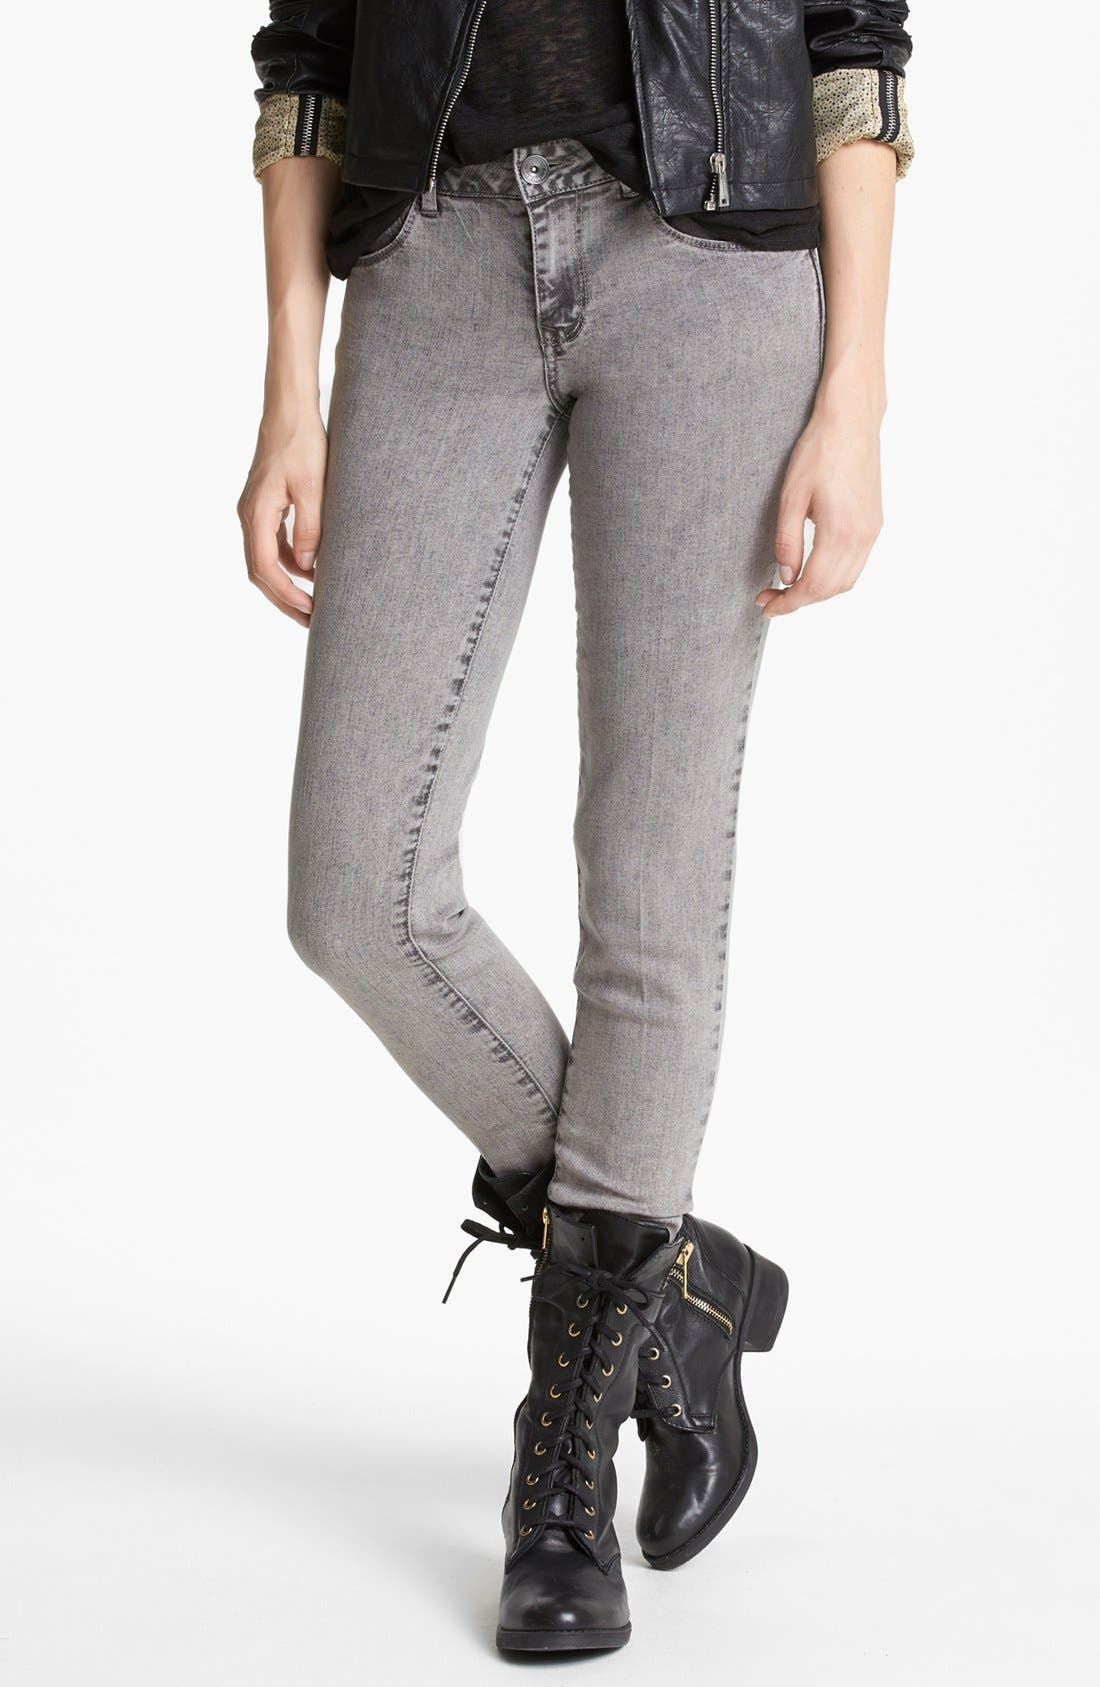 Main Image - Jolt Acid Wash Skinny Jeans (Grey) (Juniors)